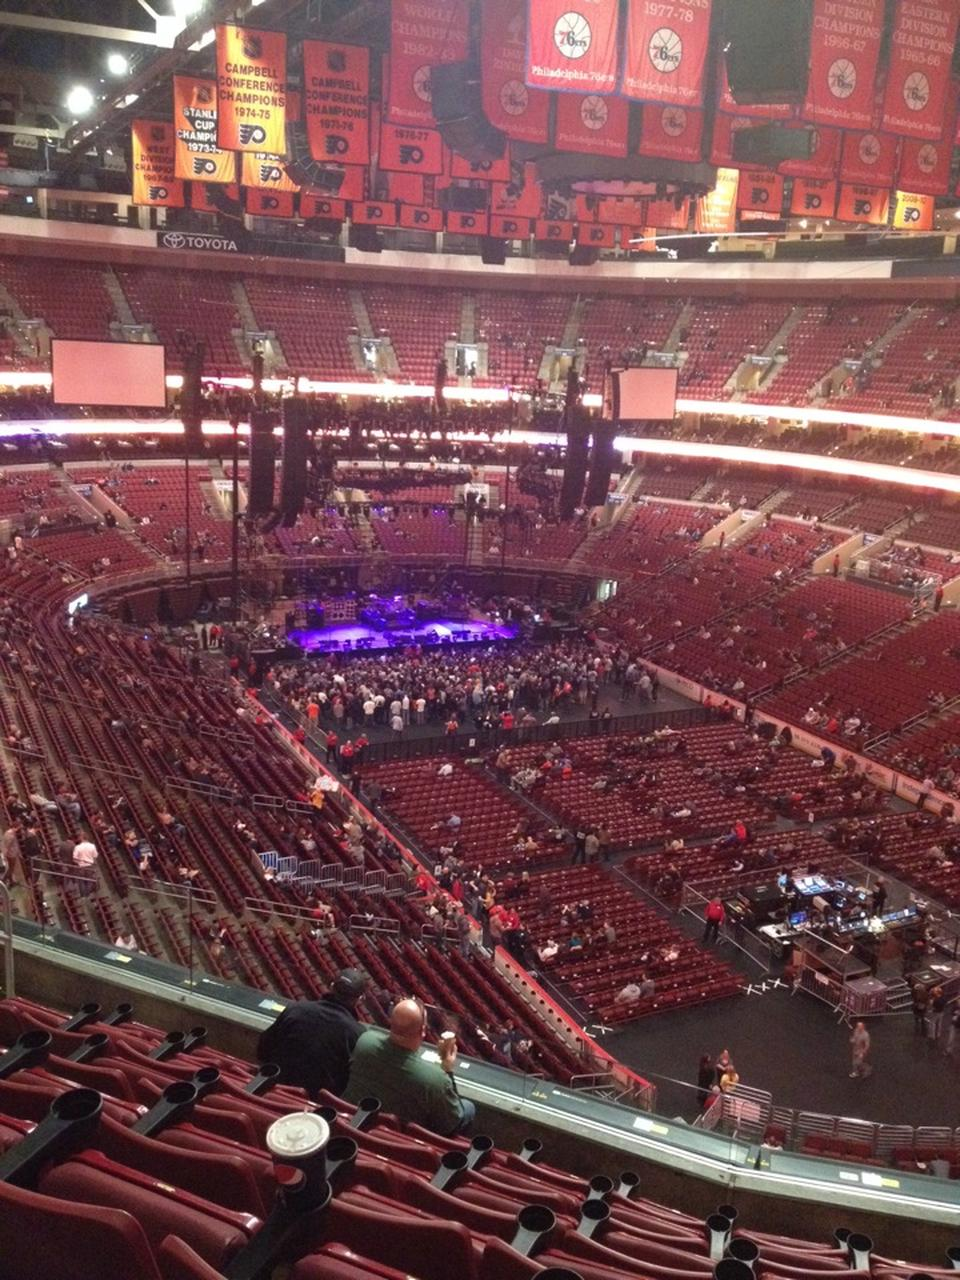 wells fargo center section 205a concert seating rateyourseats com